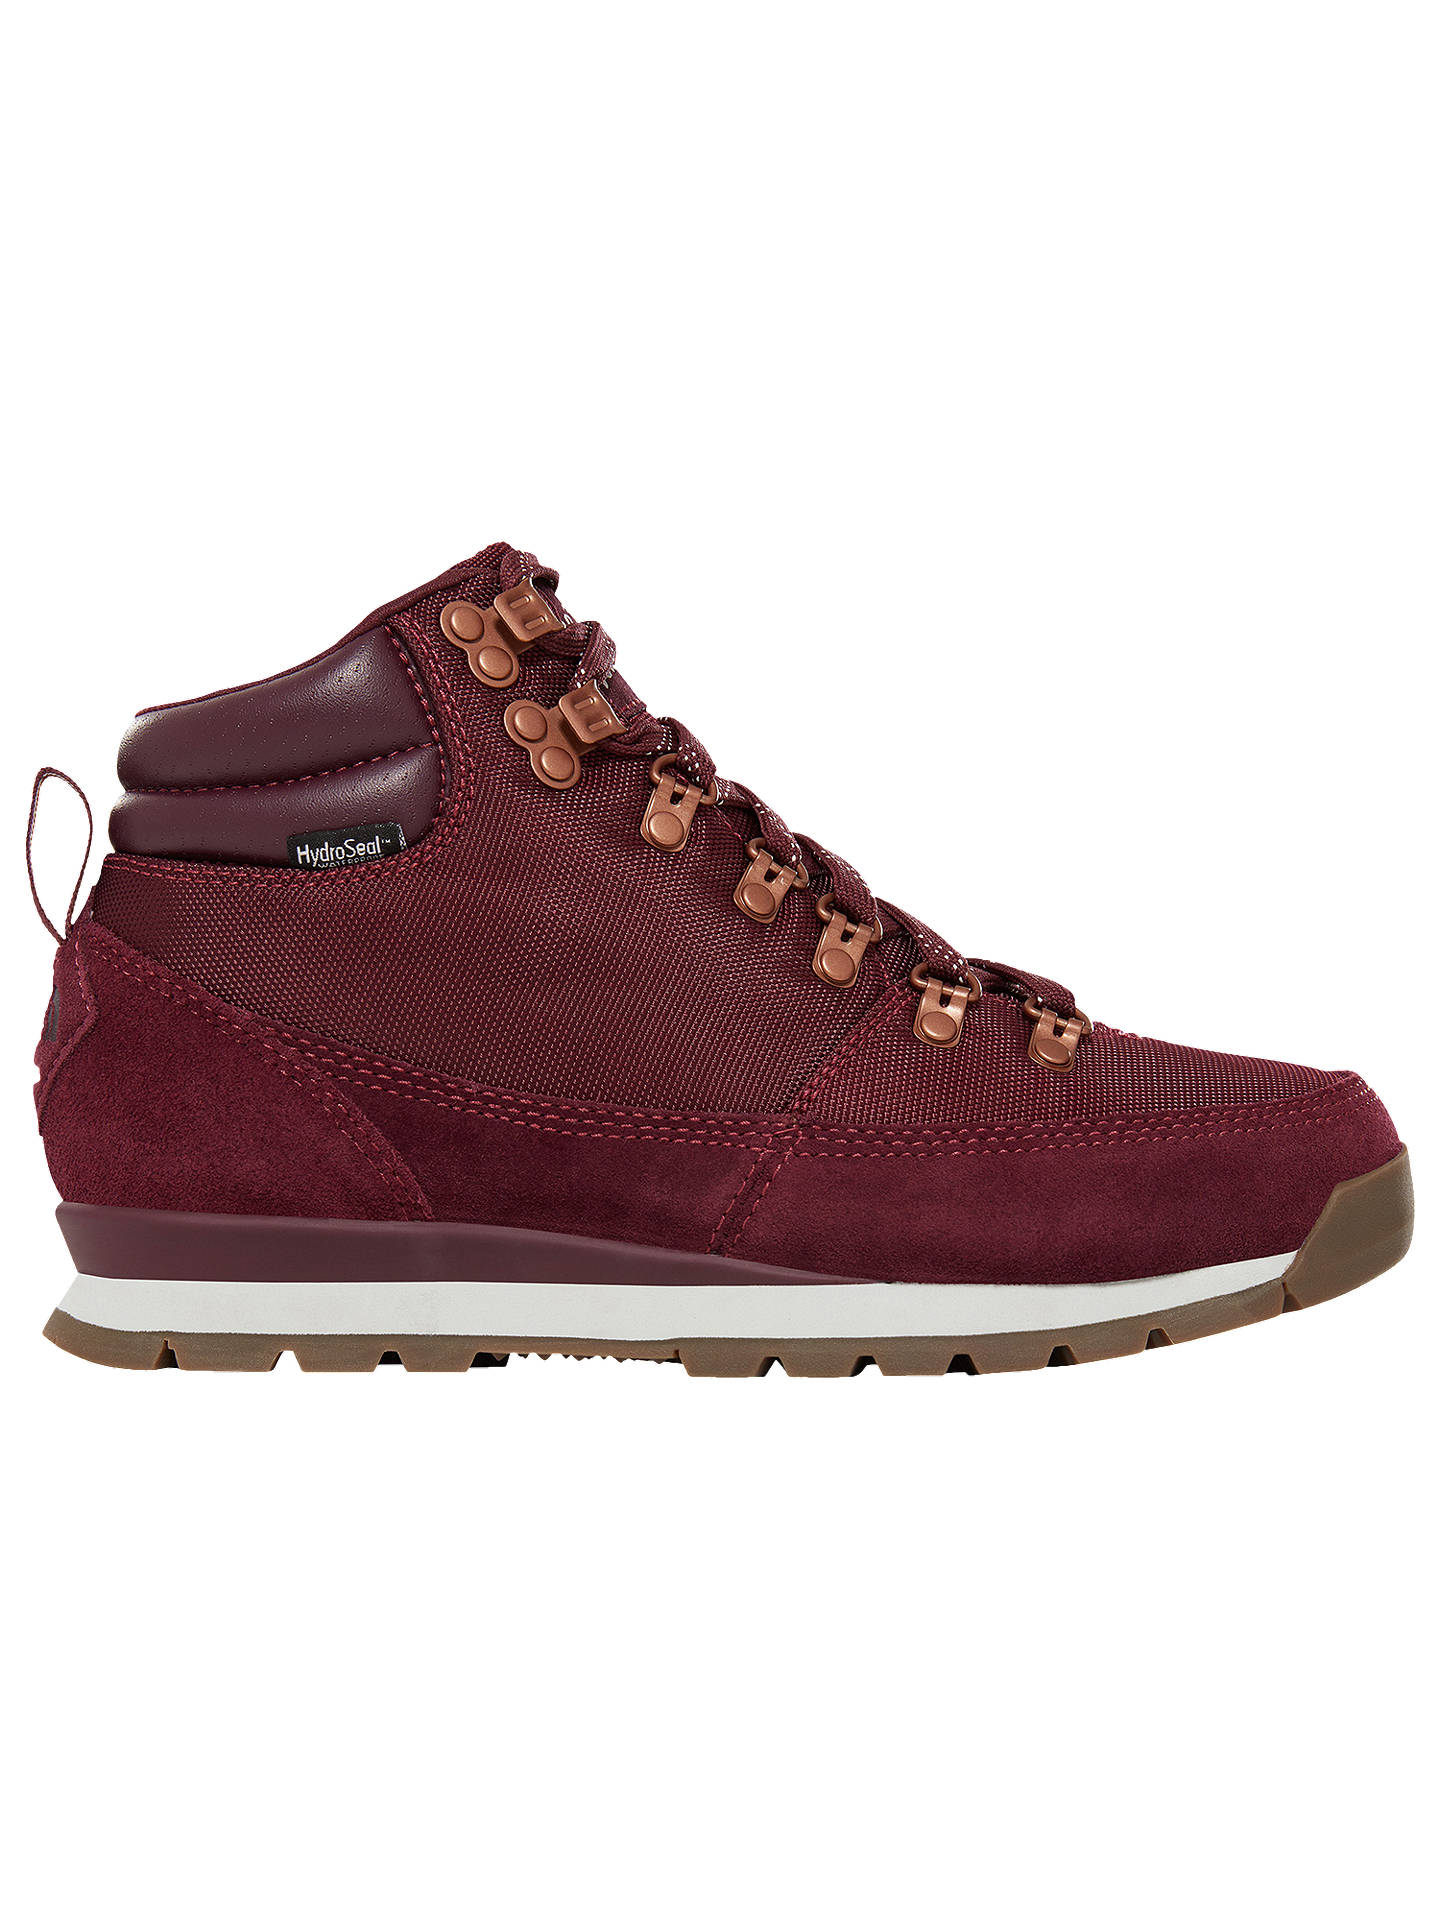 Stivaletti The North Face Bordeaux Back To Berkeley Redux